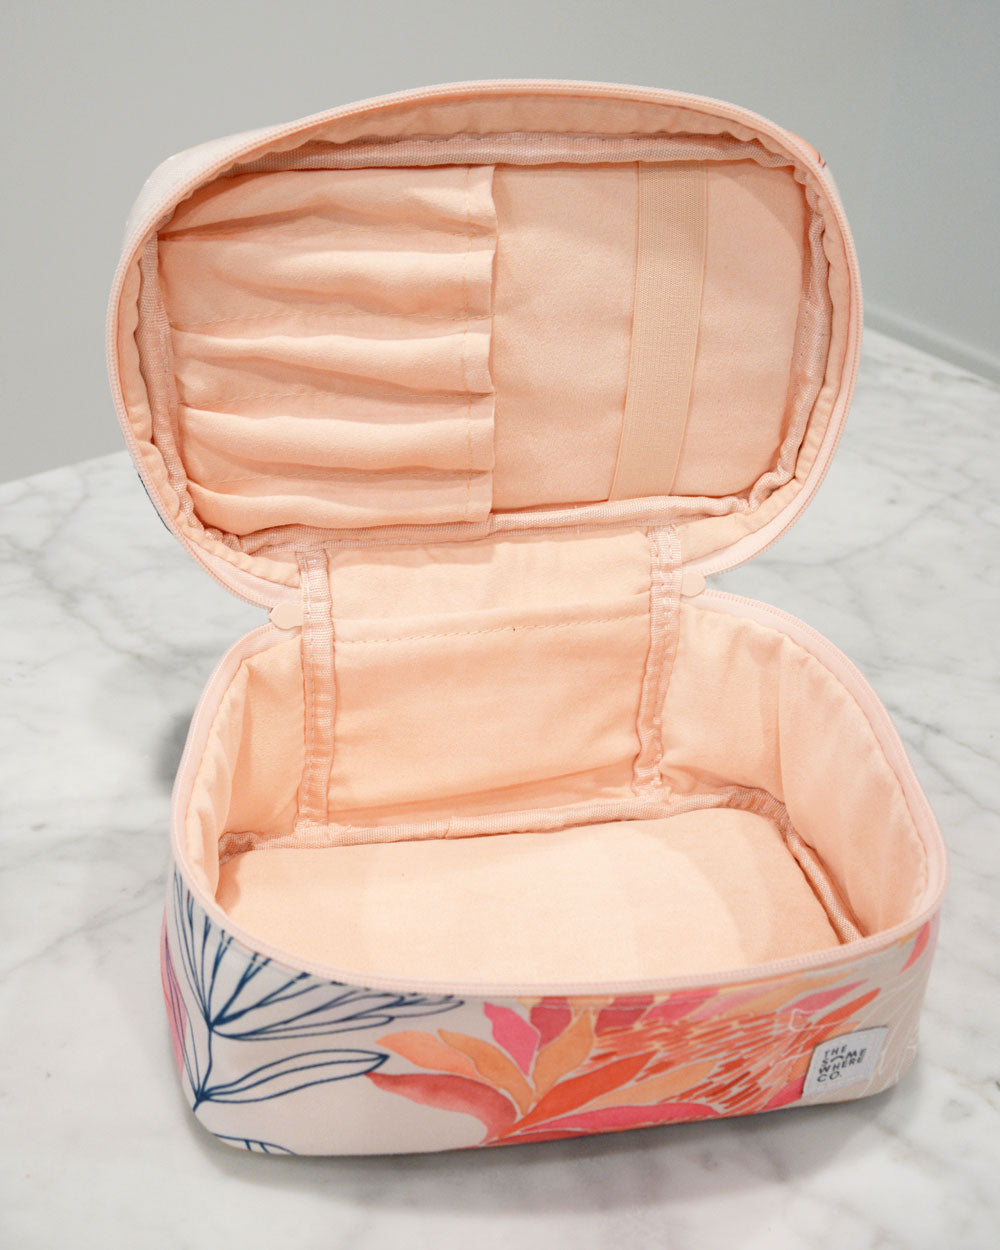 Brushed Protea Cosmetic Case